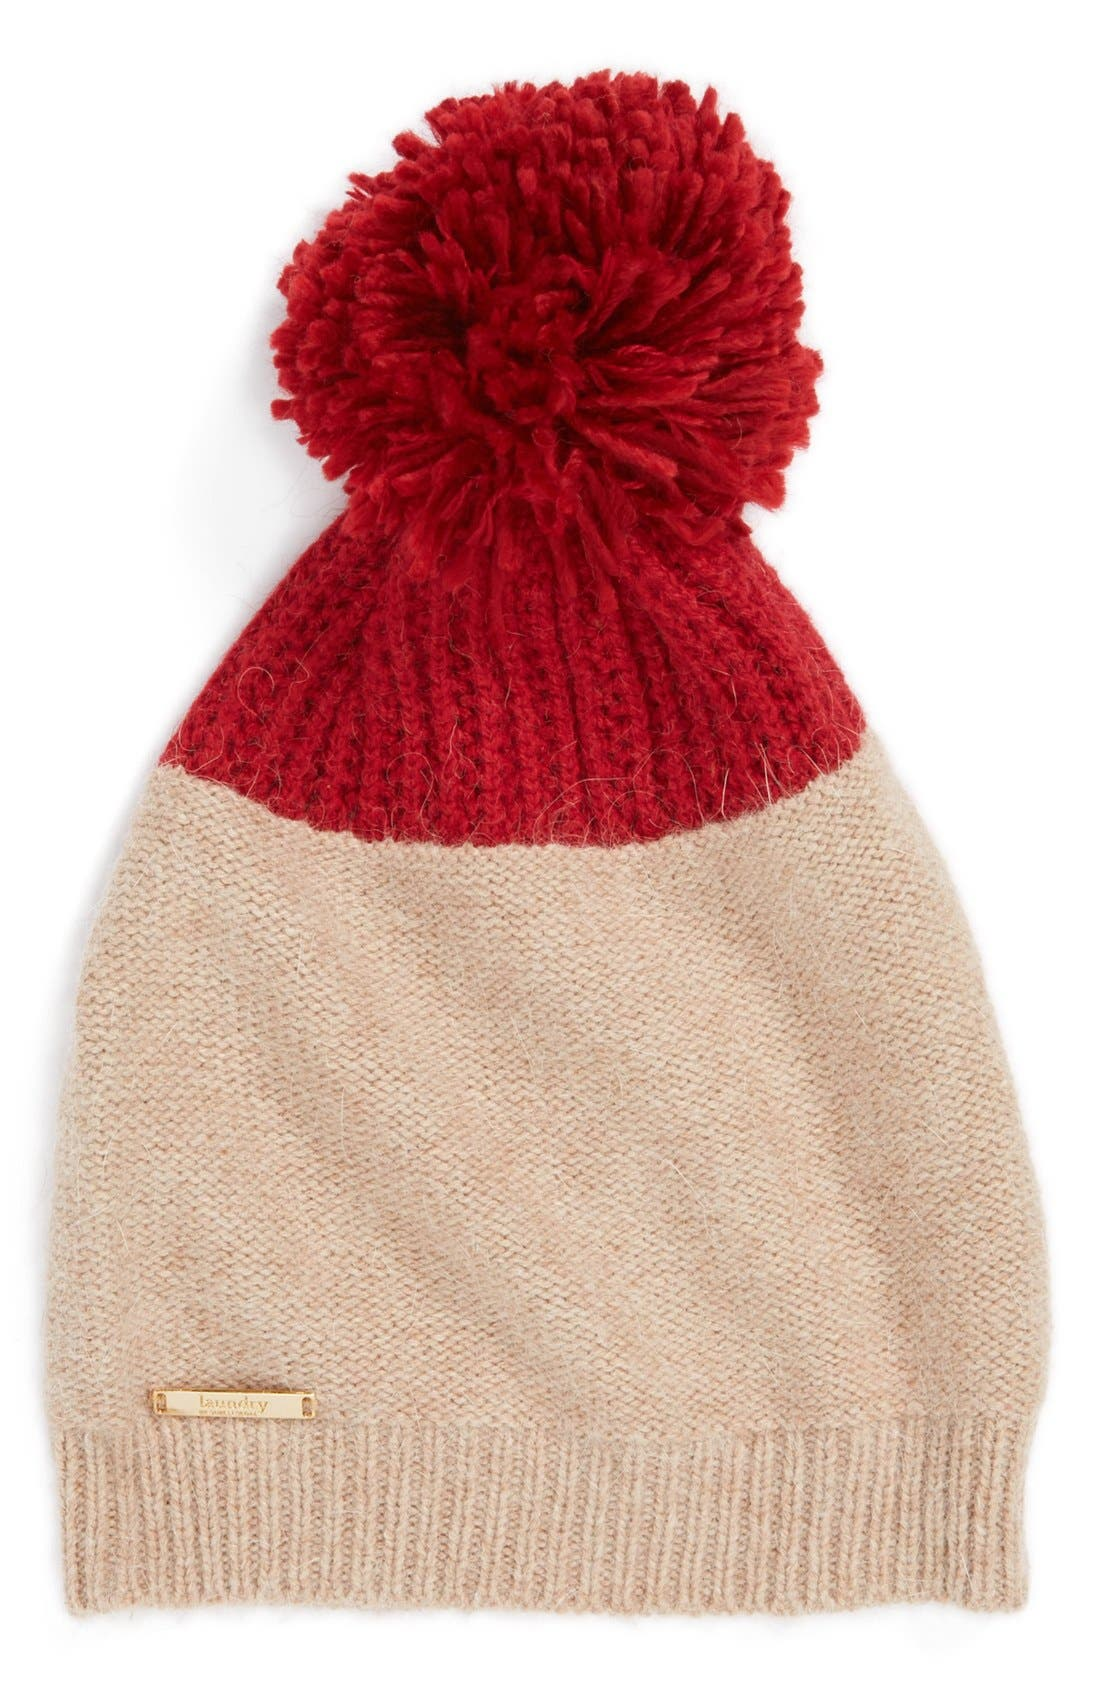 Alternate Image 1 Selected - Laundry by Shelli Segal Colorblock Beanie